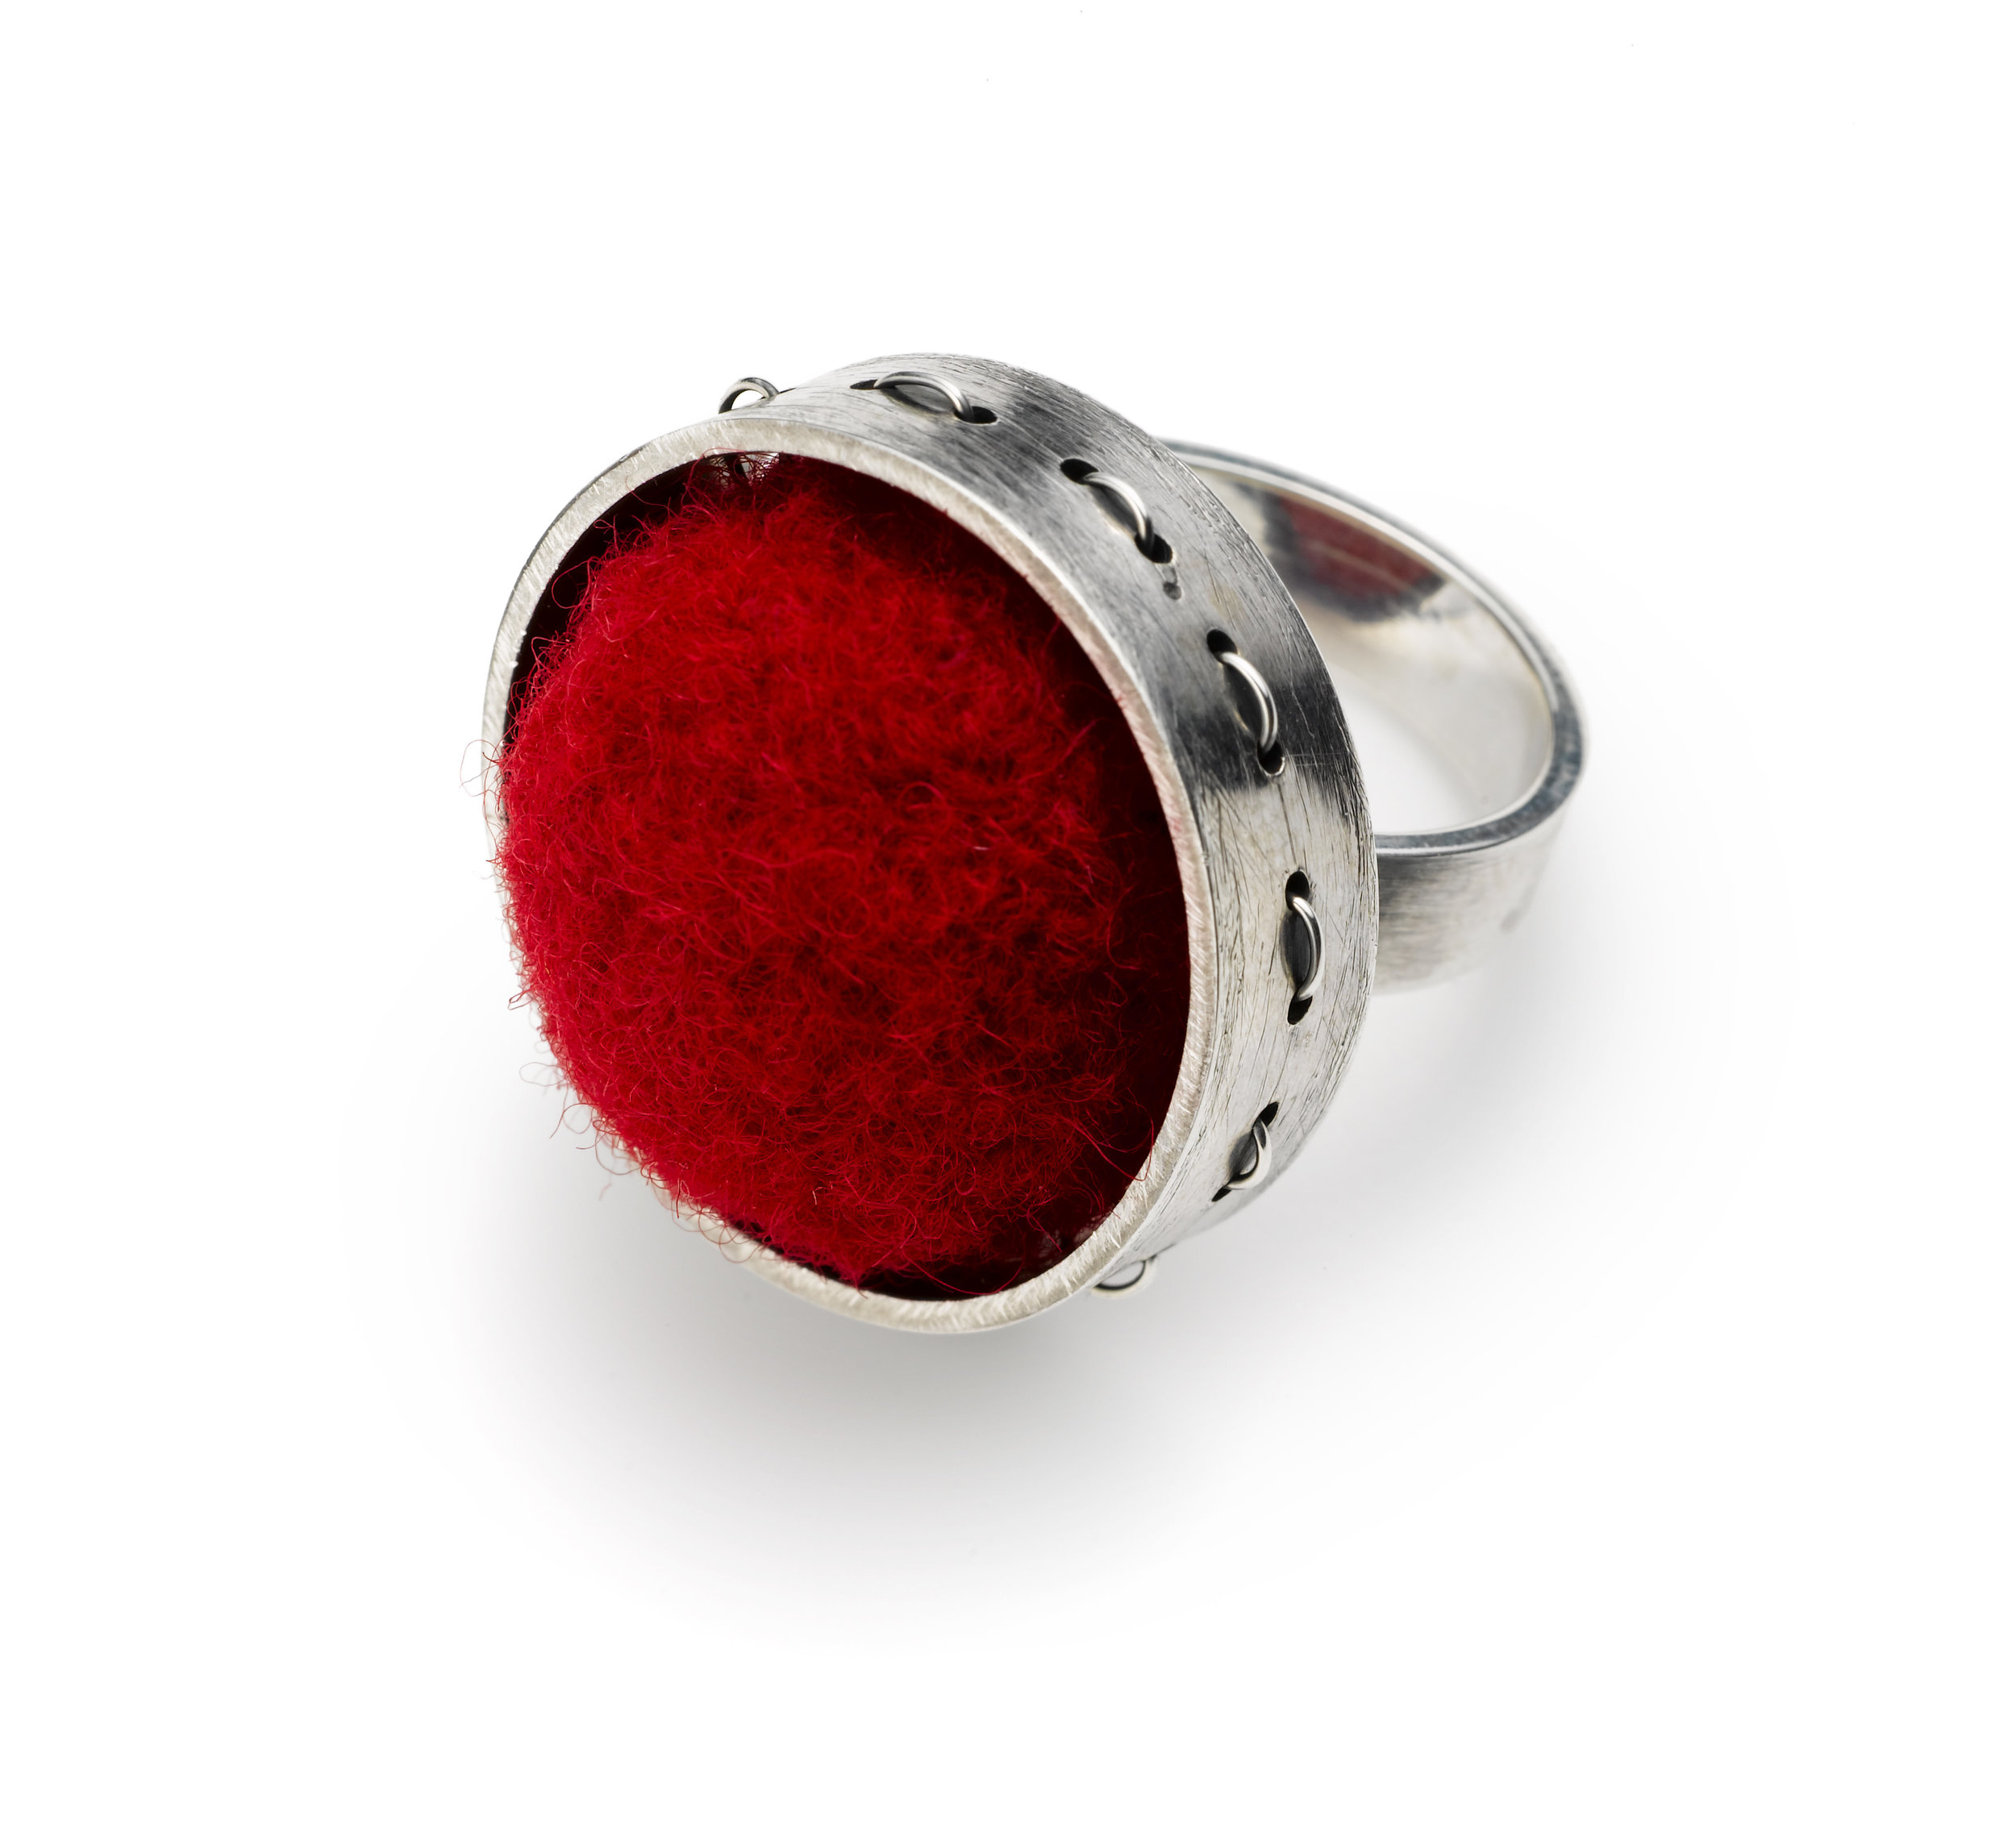 "Fabricated sterling silver ring with red wool felt 1""diameter. ""Stitches"" around the side of the sterling ring also reflect stitches in fabric and textile arts"